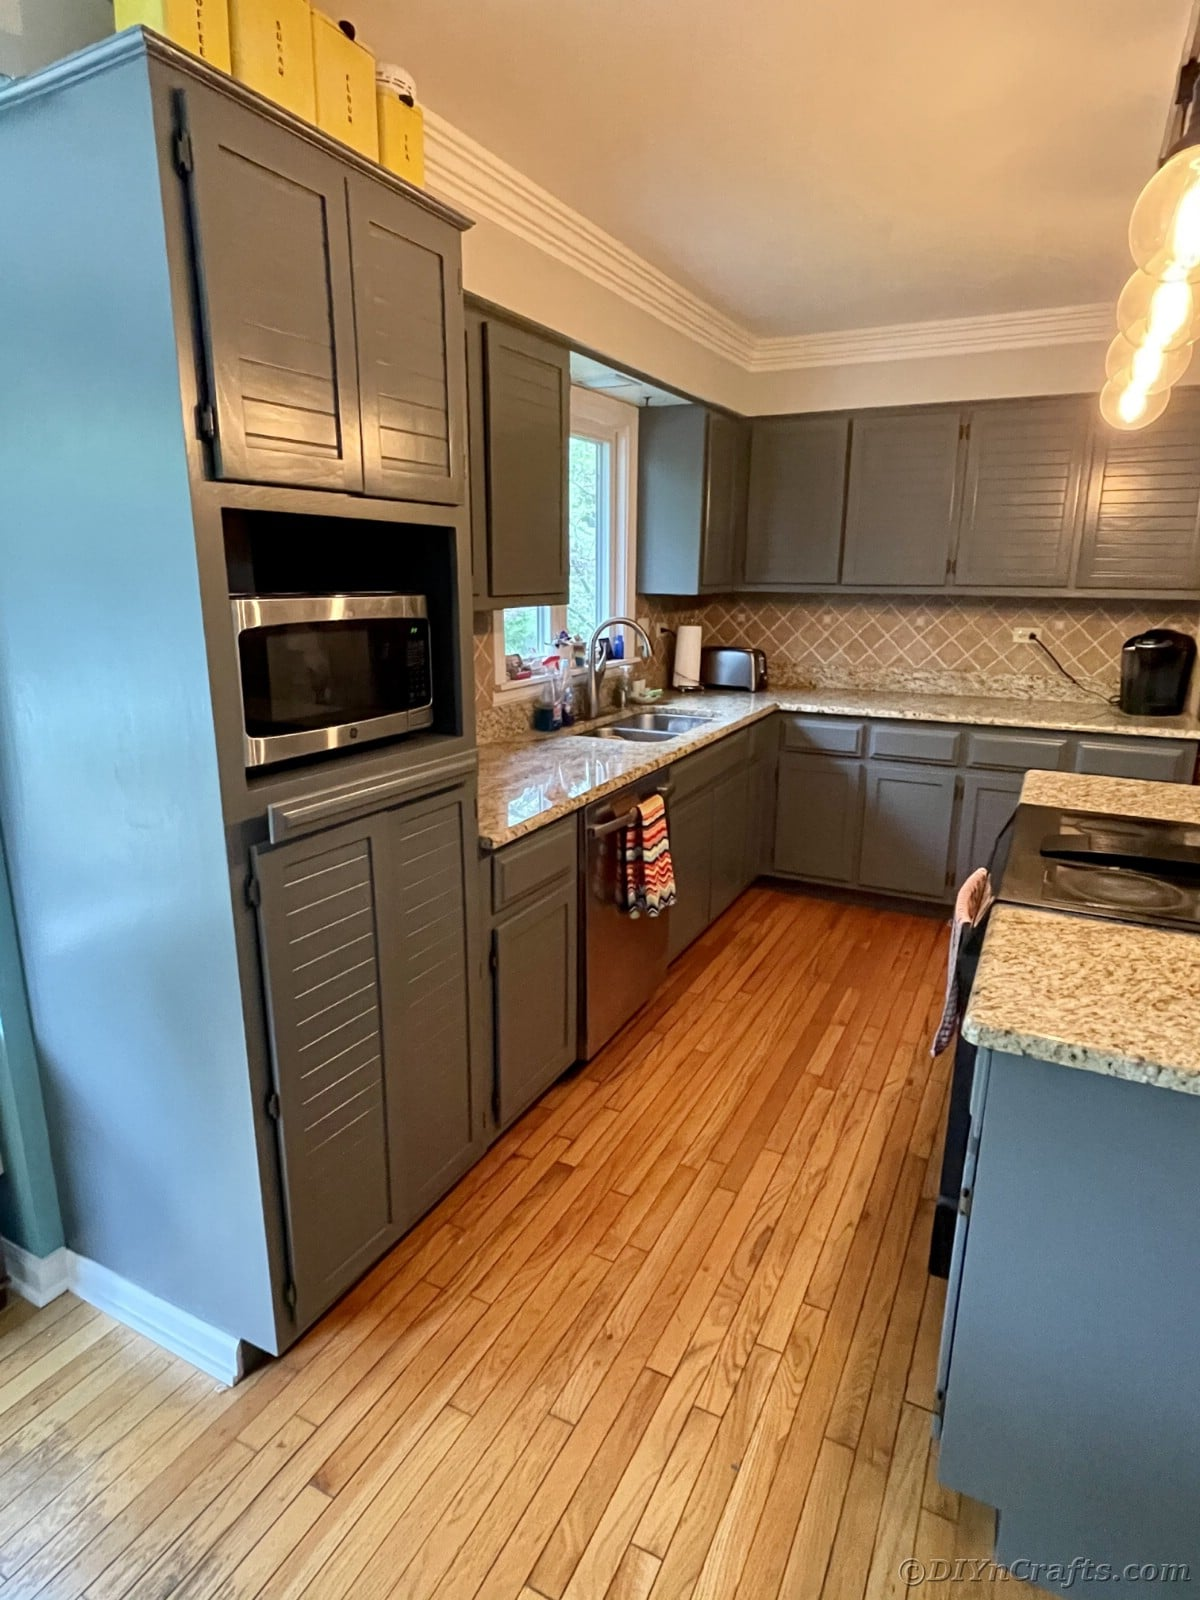 Kitchen with gray cabinets and marbled countertops